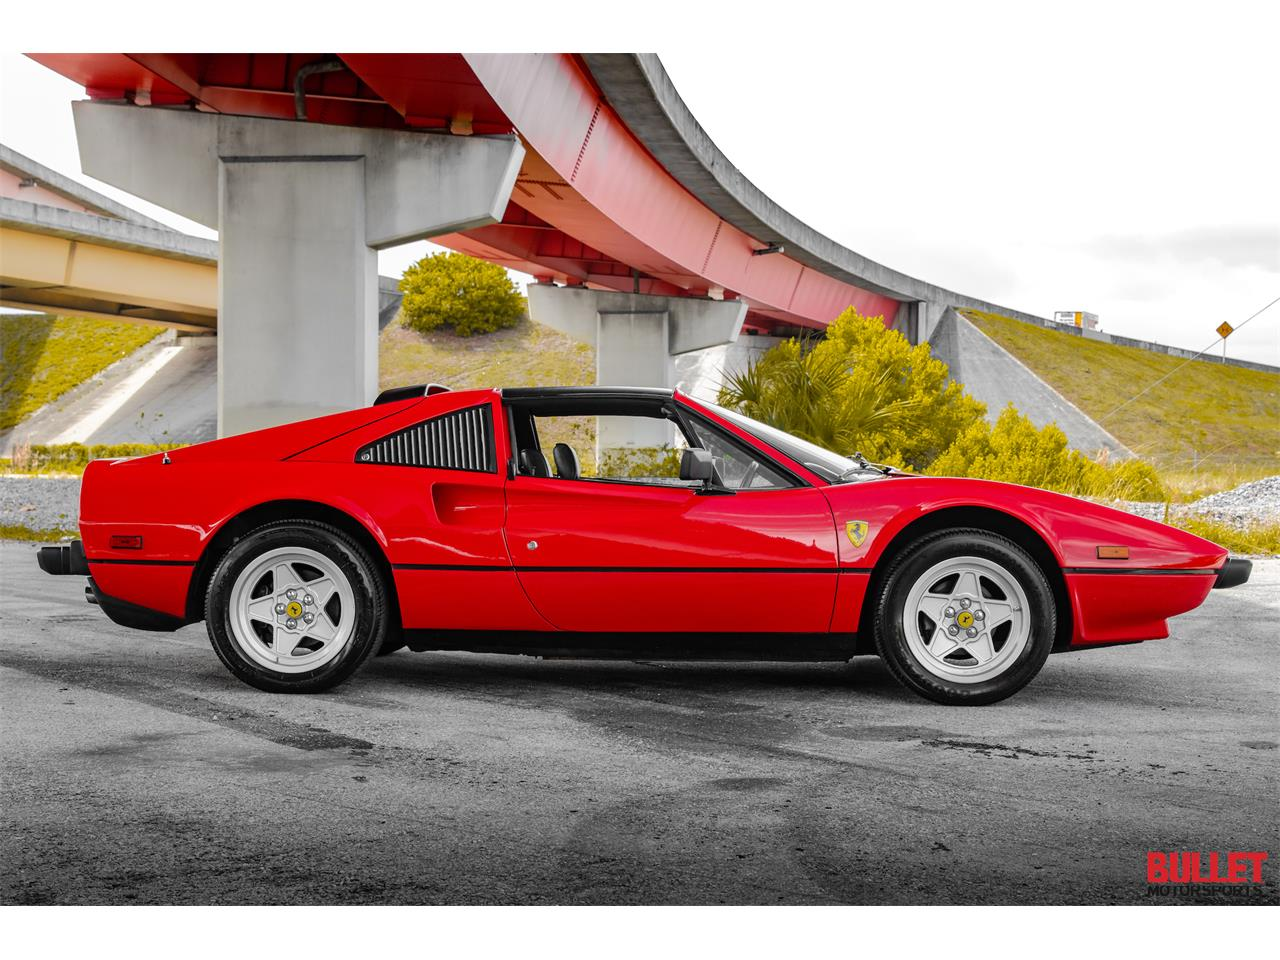 Large Picture of 1985 Ferrari 308 GTS located in Fort Lauderdale Florida - $65,000.00 Offered by Bullet Motorsports Inc - PPFL